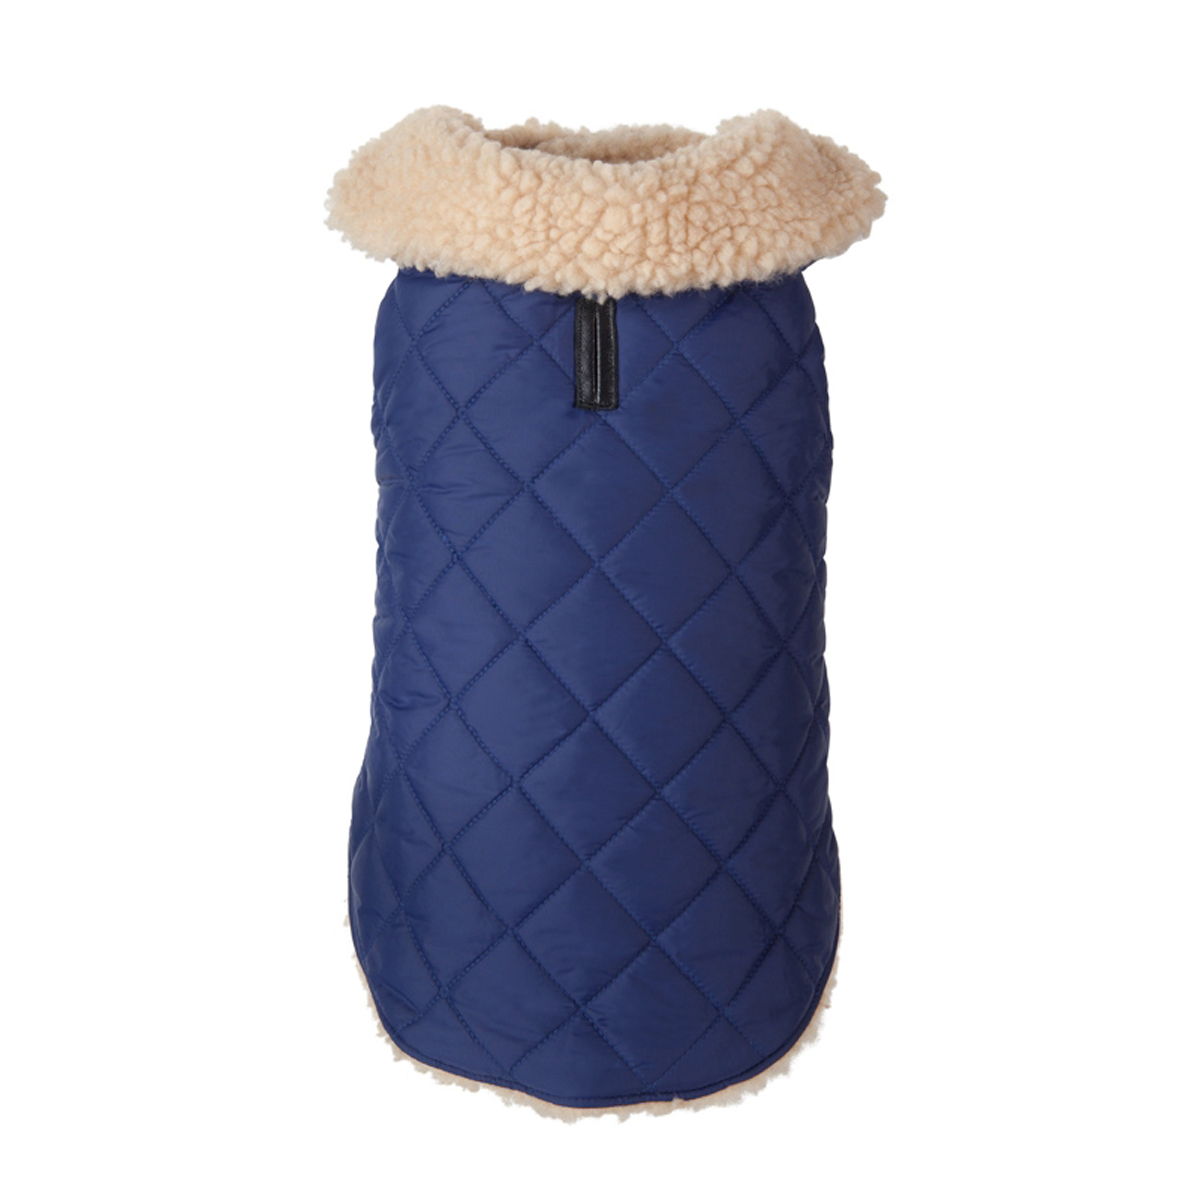 Quilted Shearling Dog Jacket - Navy